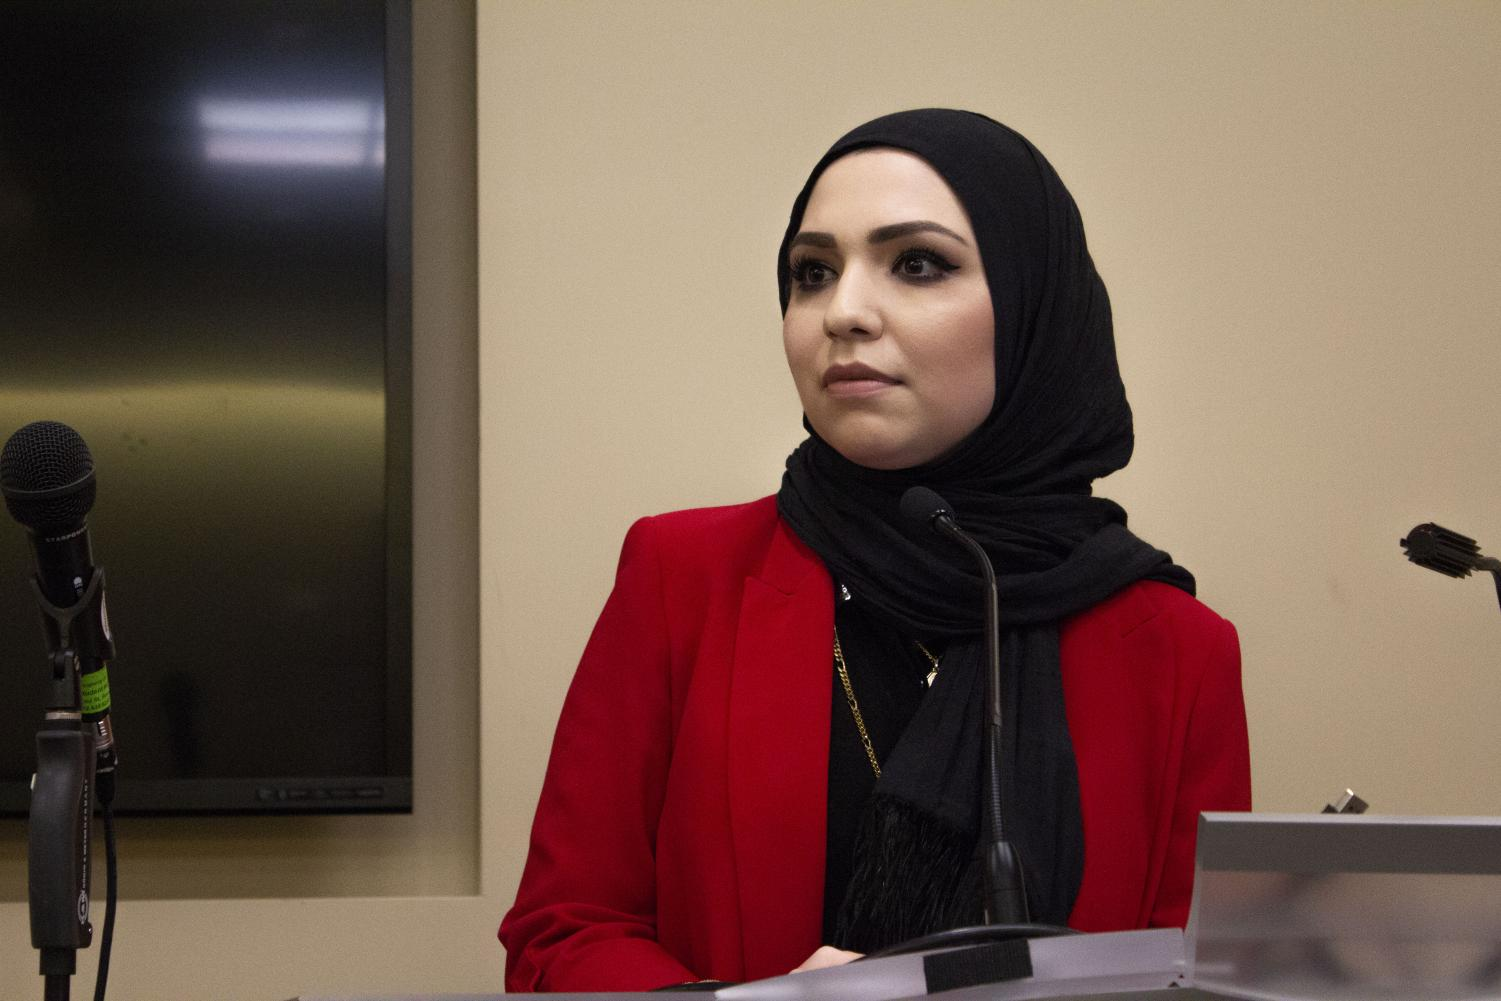 Activist Isra Chaker delivering her speech to Fordham LC Students on Nov. 7. (ARIA LUGO/THE OBSERVER)